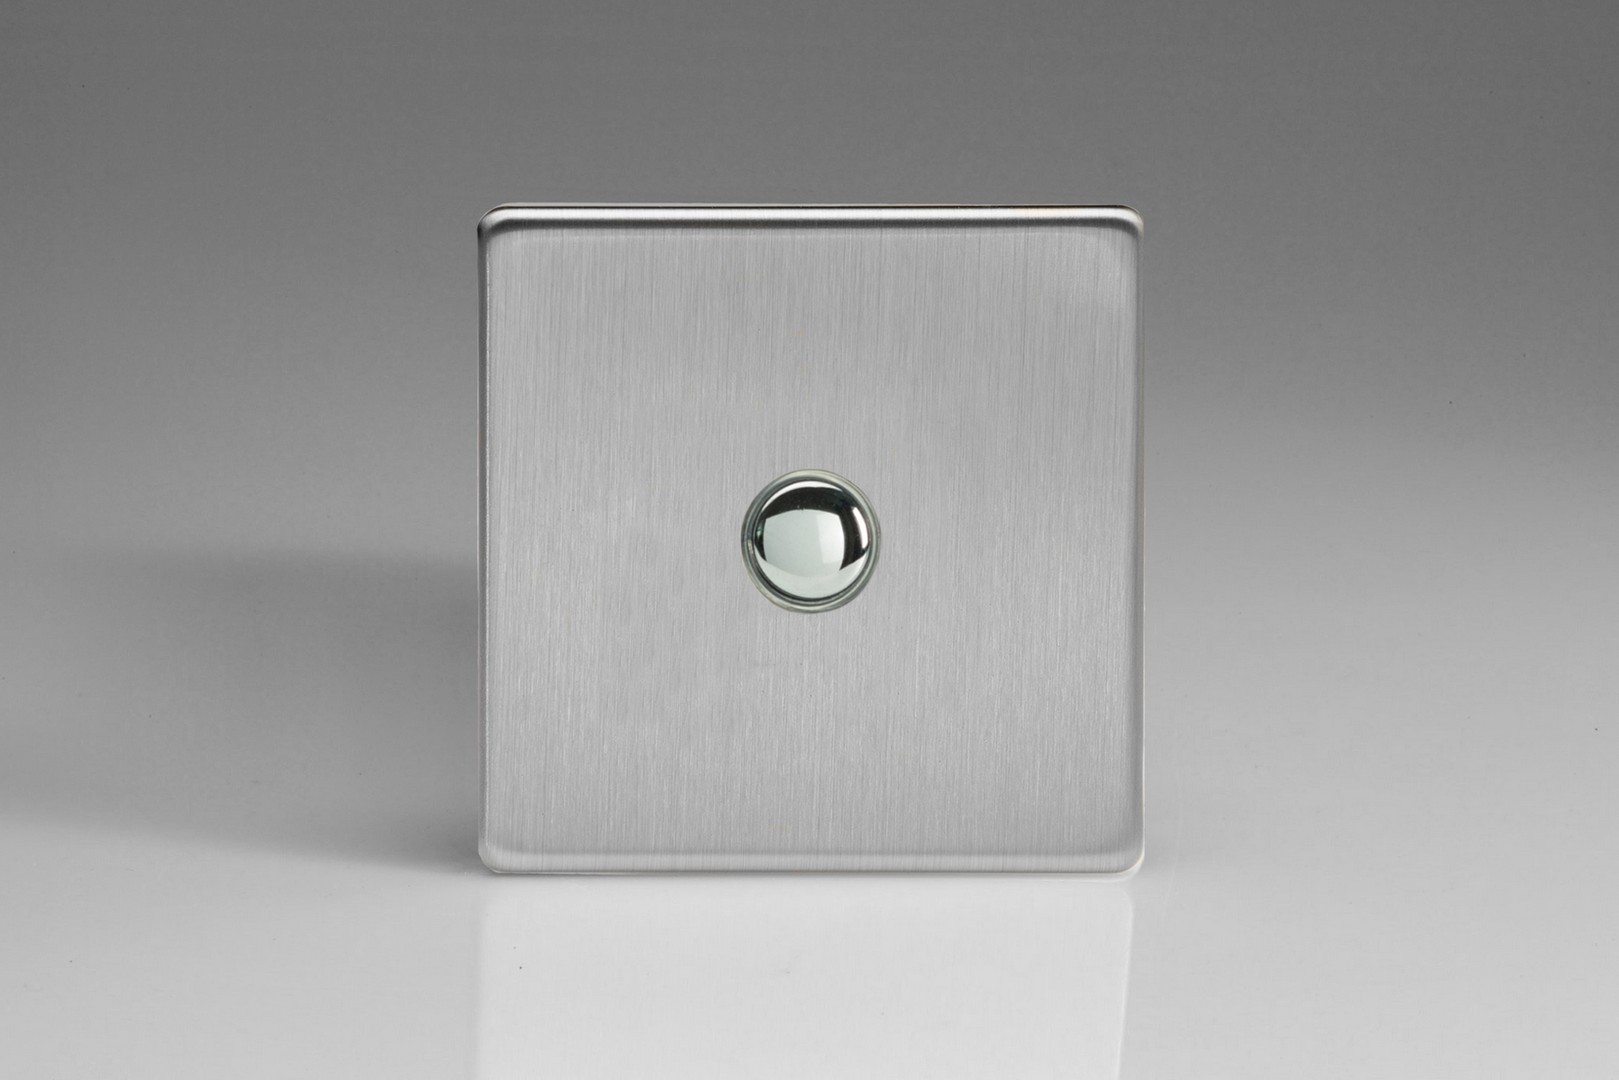 Brushed Steel Impulse Switch